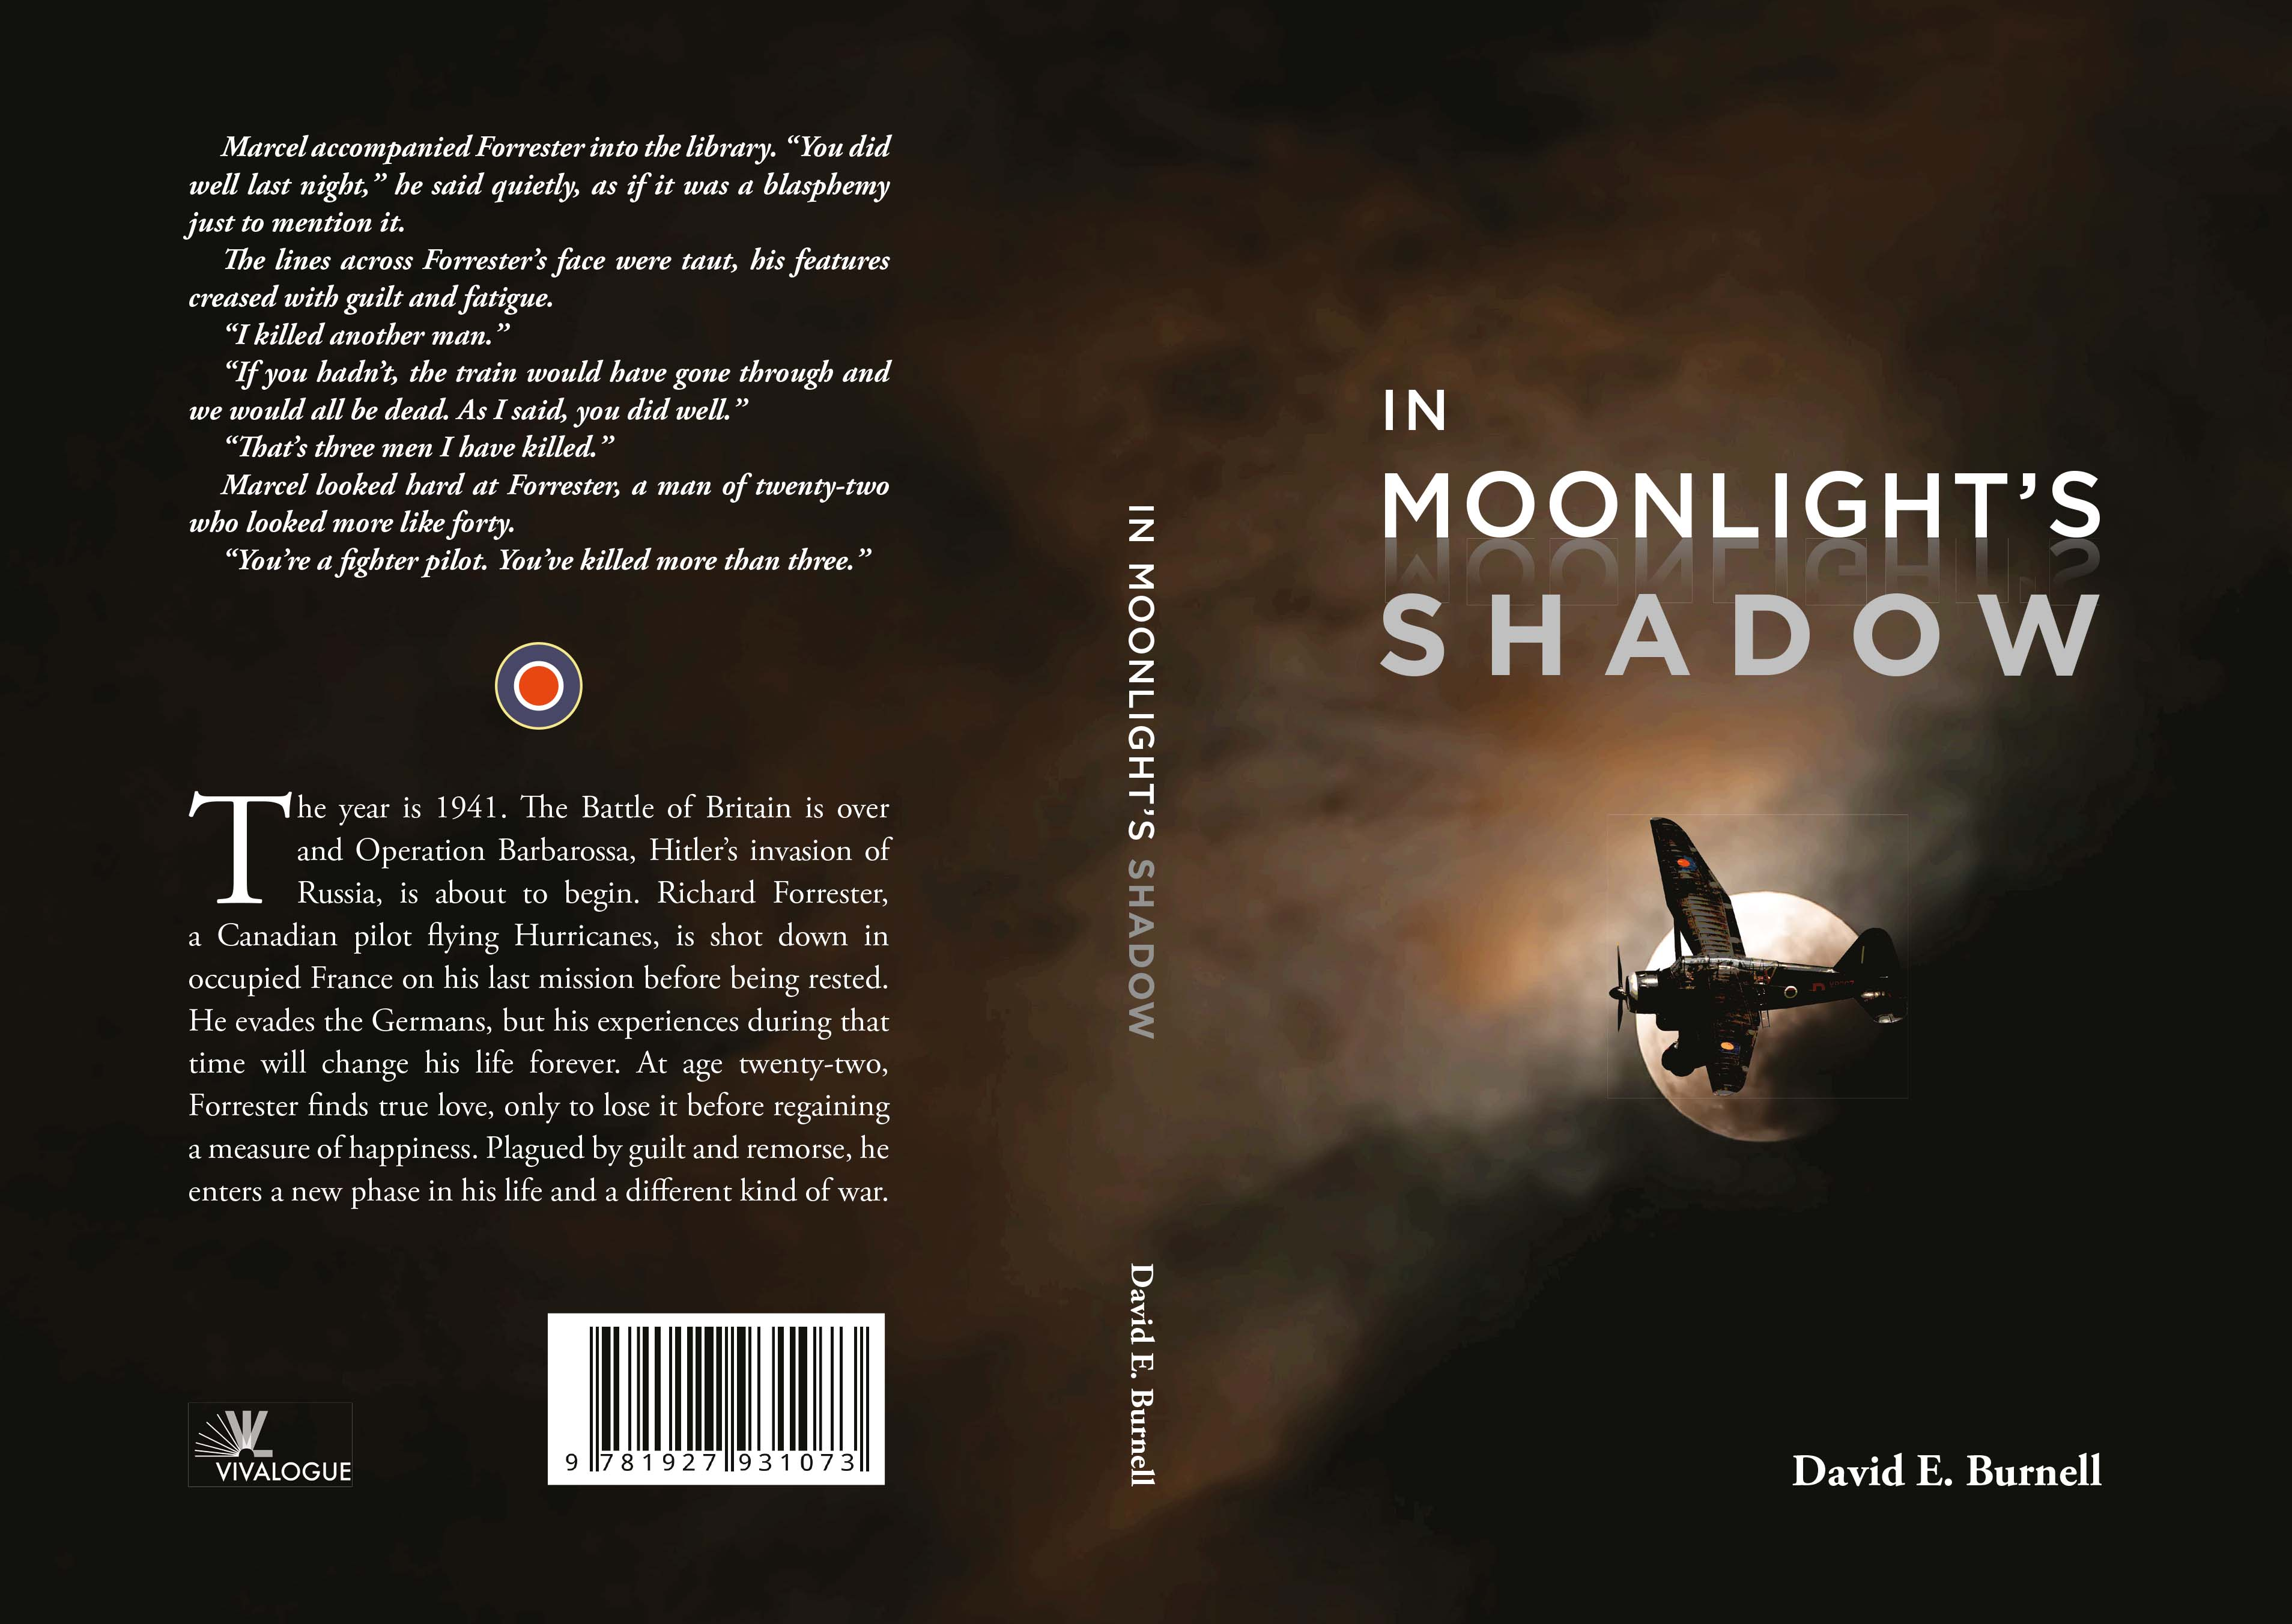 In Moonlight's Shadow full cover